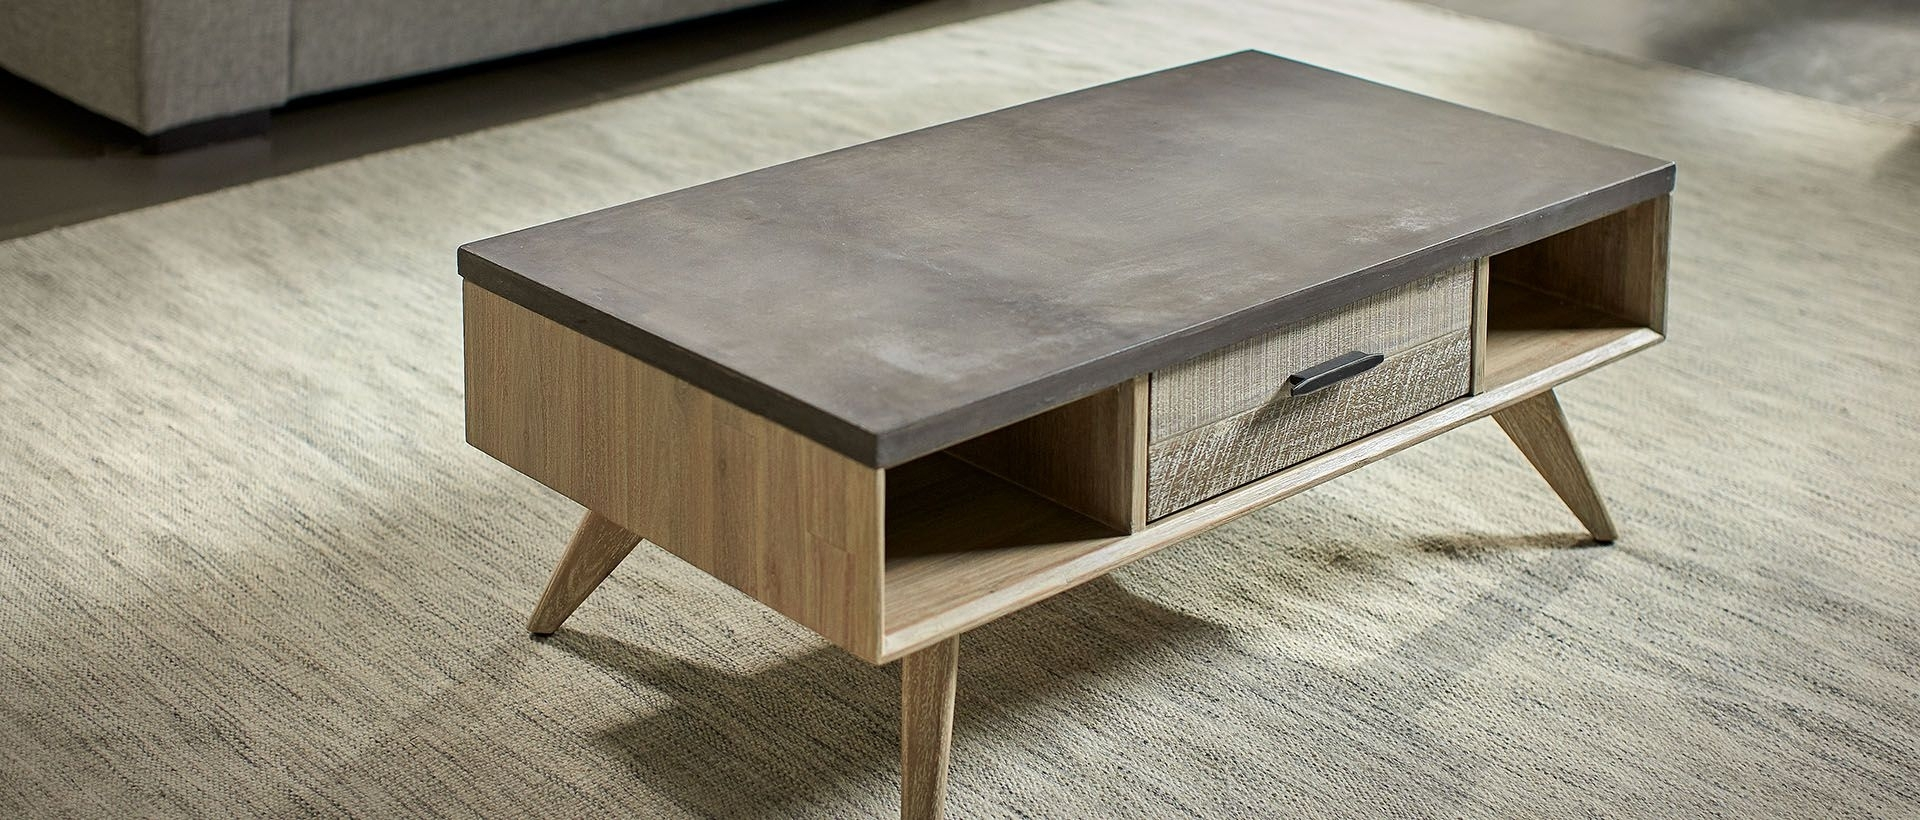 Nick Scali | Coffee & Lamp Tables | Nick Scali Furniture In Joni Brass And Wood Coffee Tables (Photo 13 of 30)